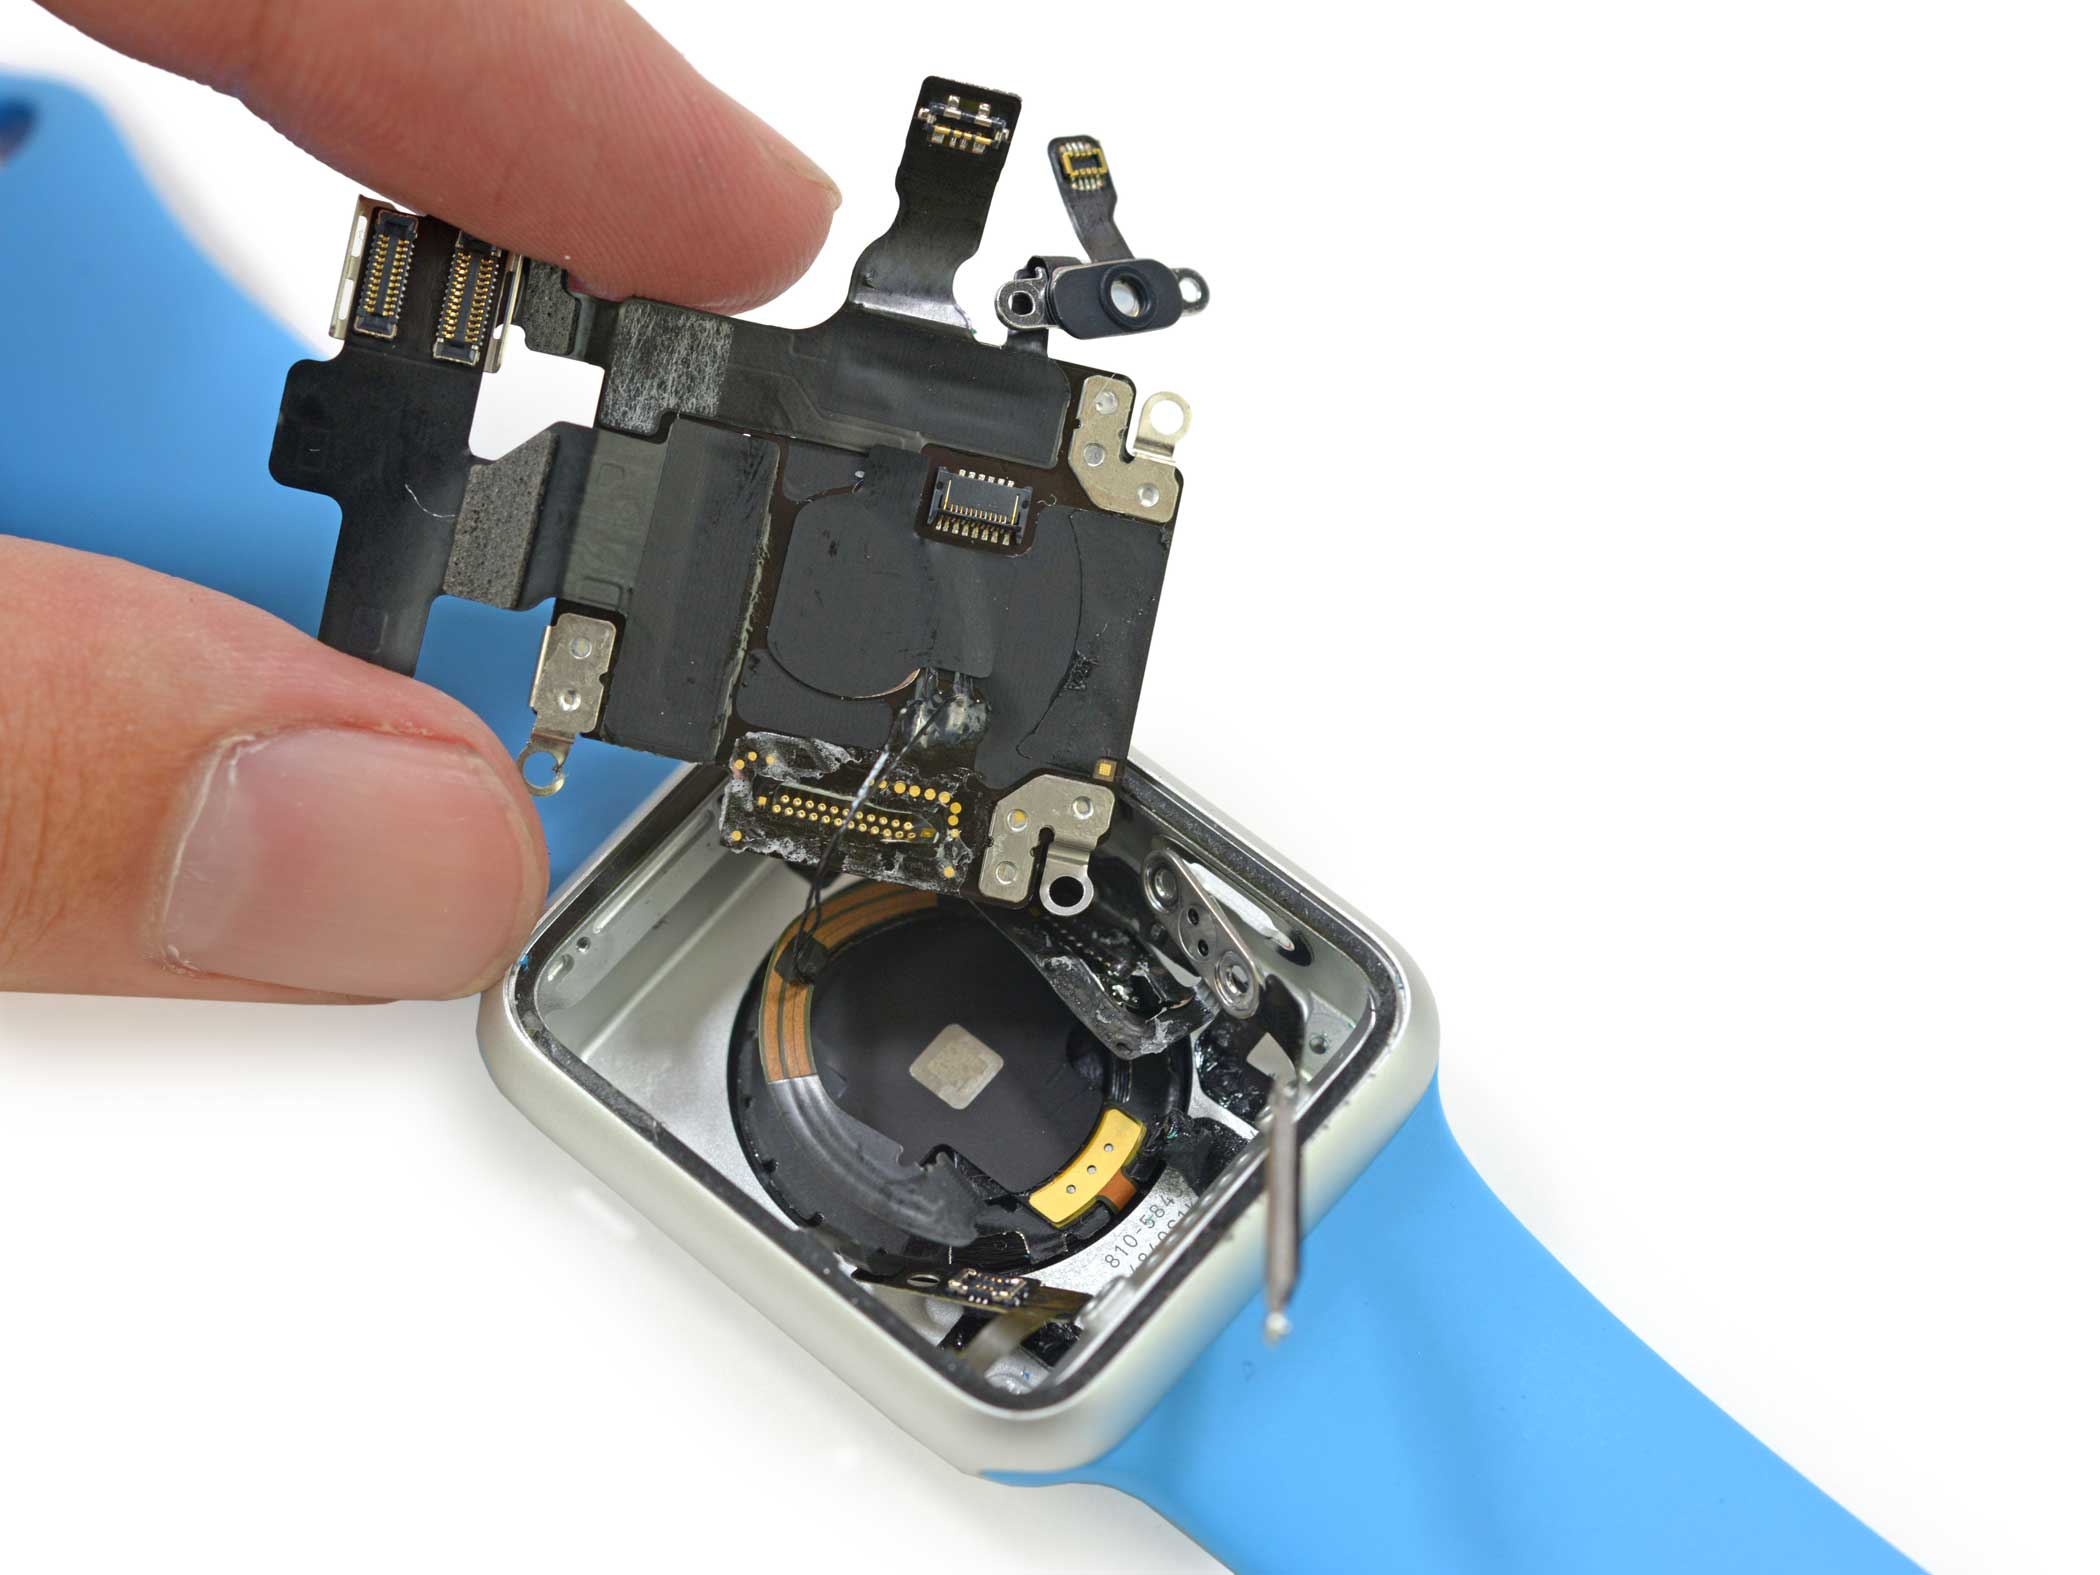 Deep in the Apple Watch's casing is the S1, the integrated computer chip that gives the device its smarts. It's extremely difficult to remove